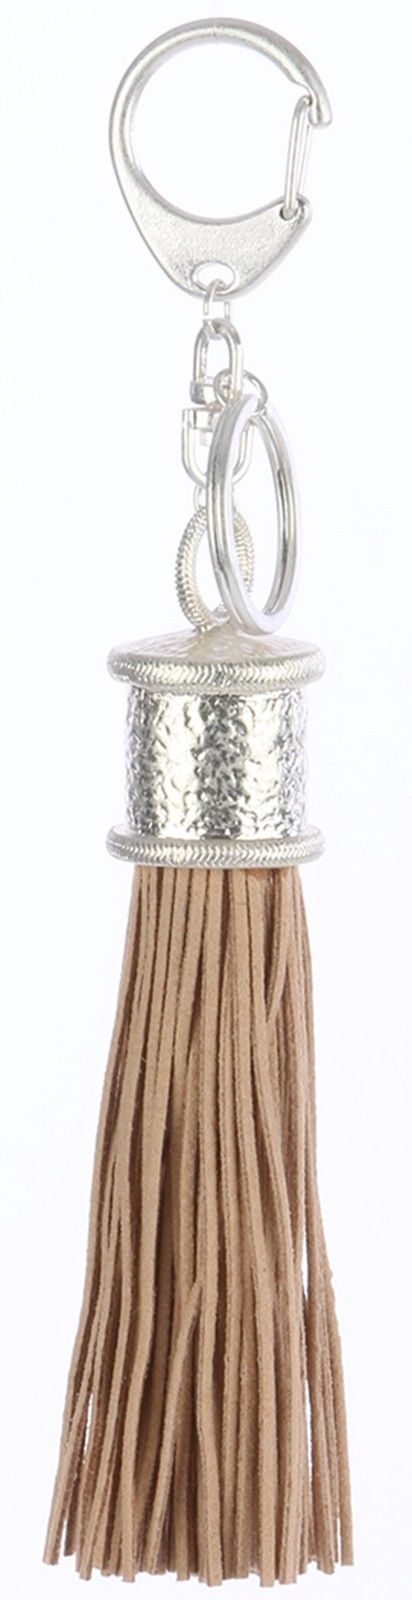 Tassel Key Chain Handbag Charm Accessory Key Fob Claw Hook Silvertone Beige 2